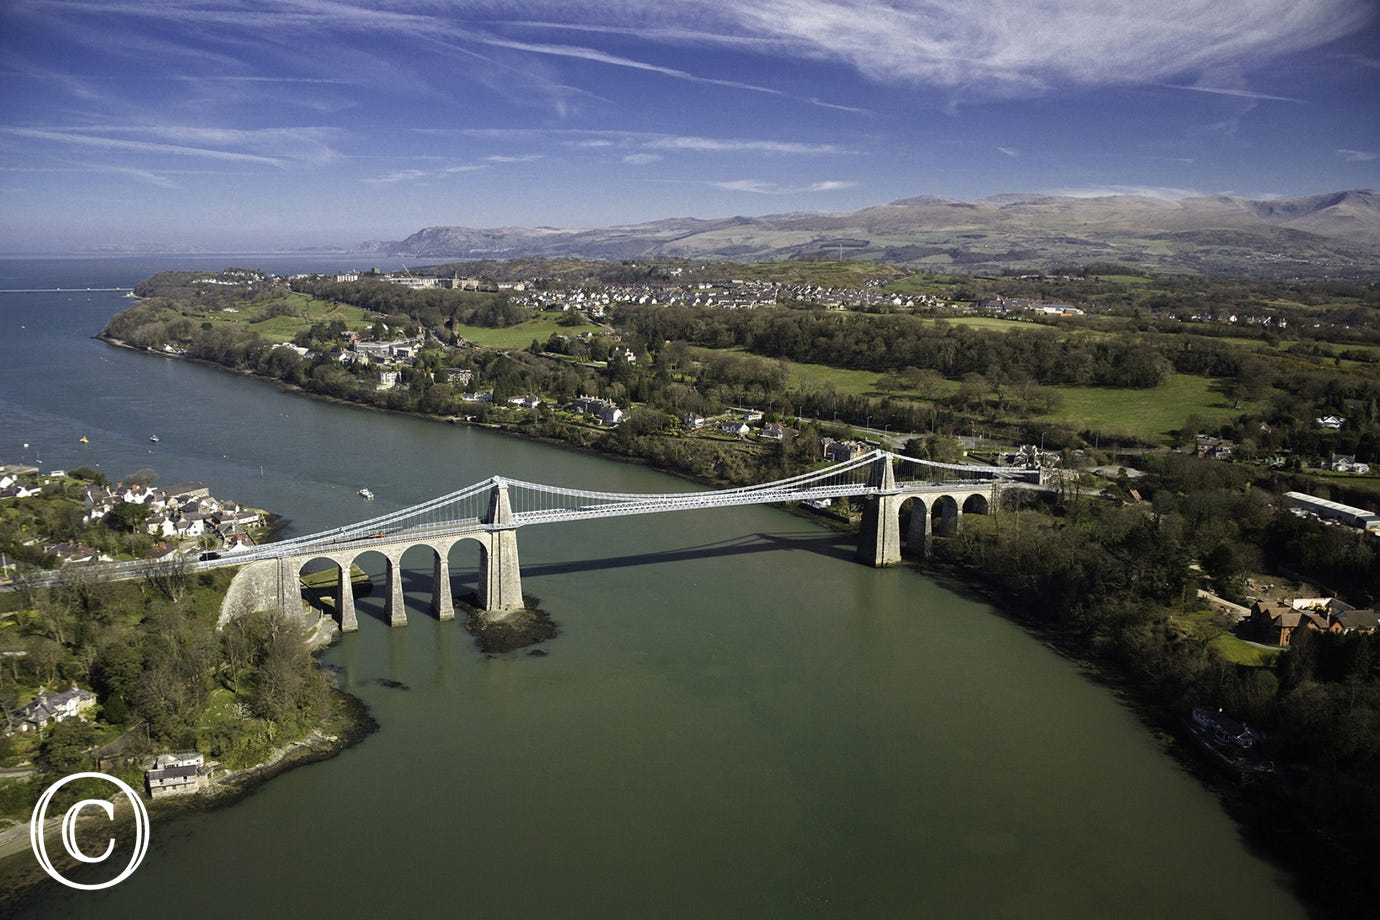 One of two bridges that connect Anglesey with mainland Wales